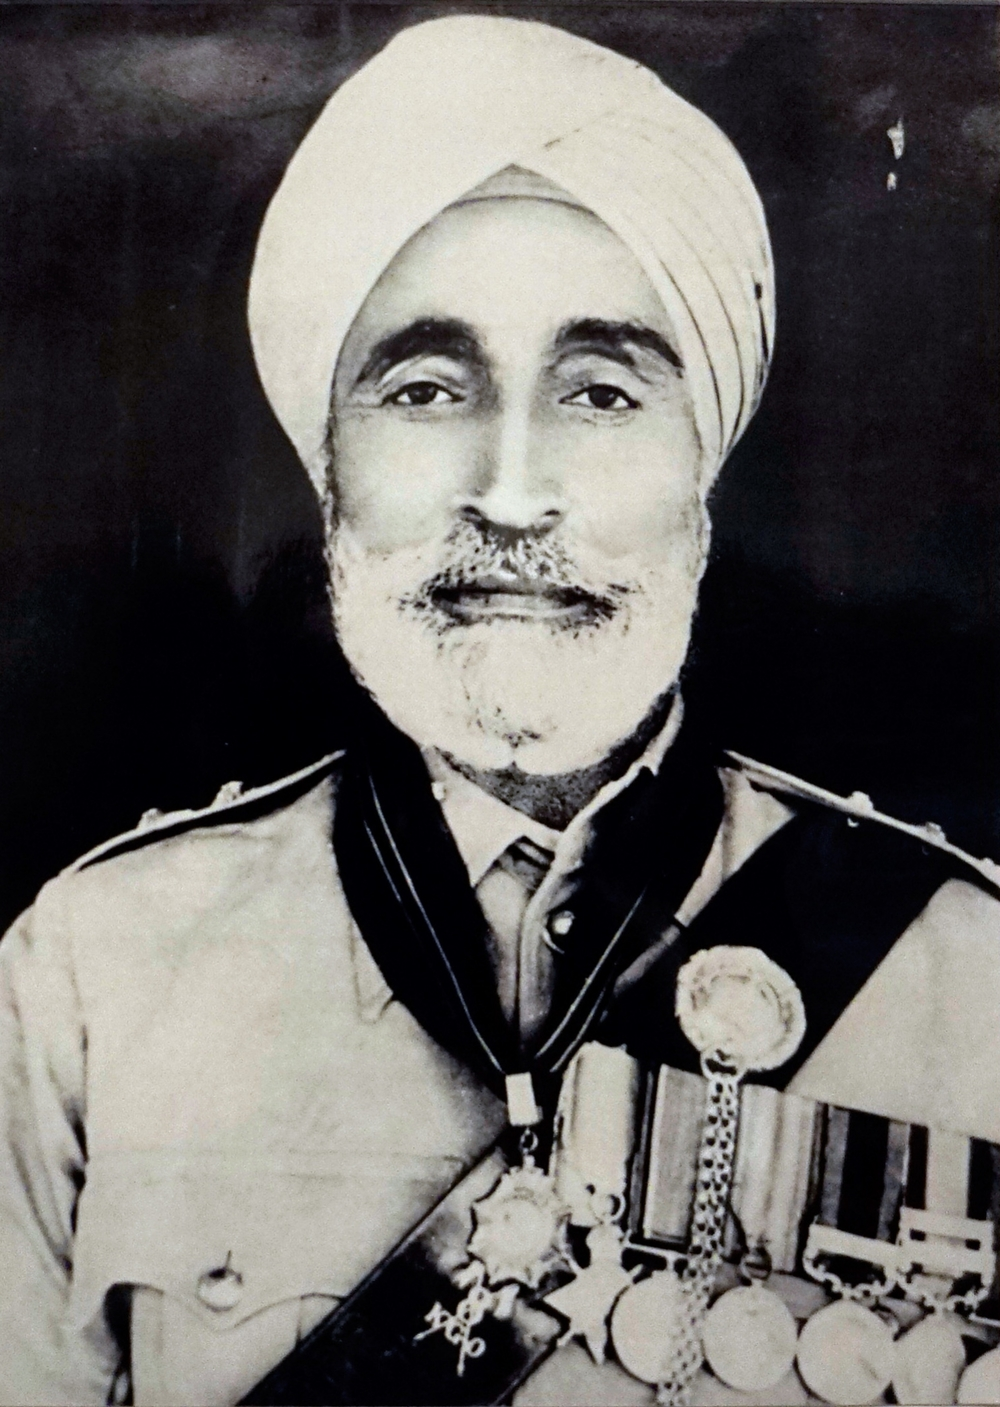 Risaldar Harnam Singh wearing his medals